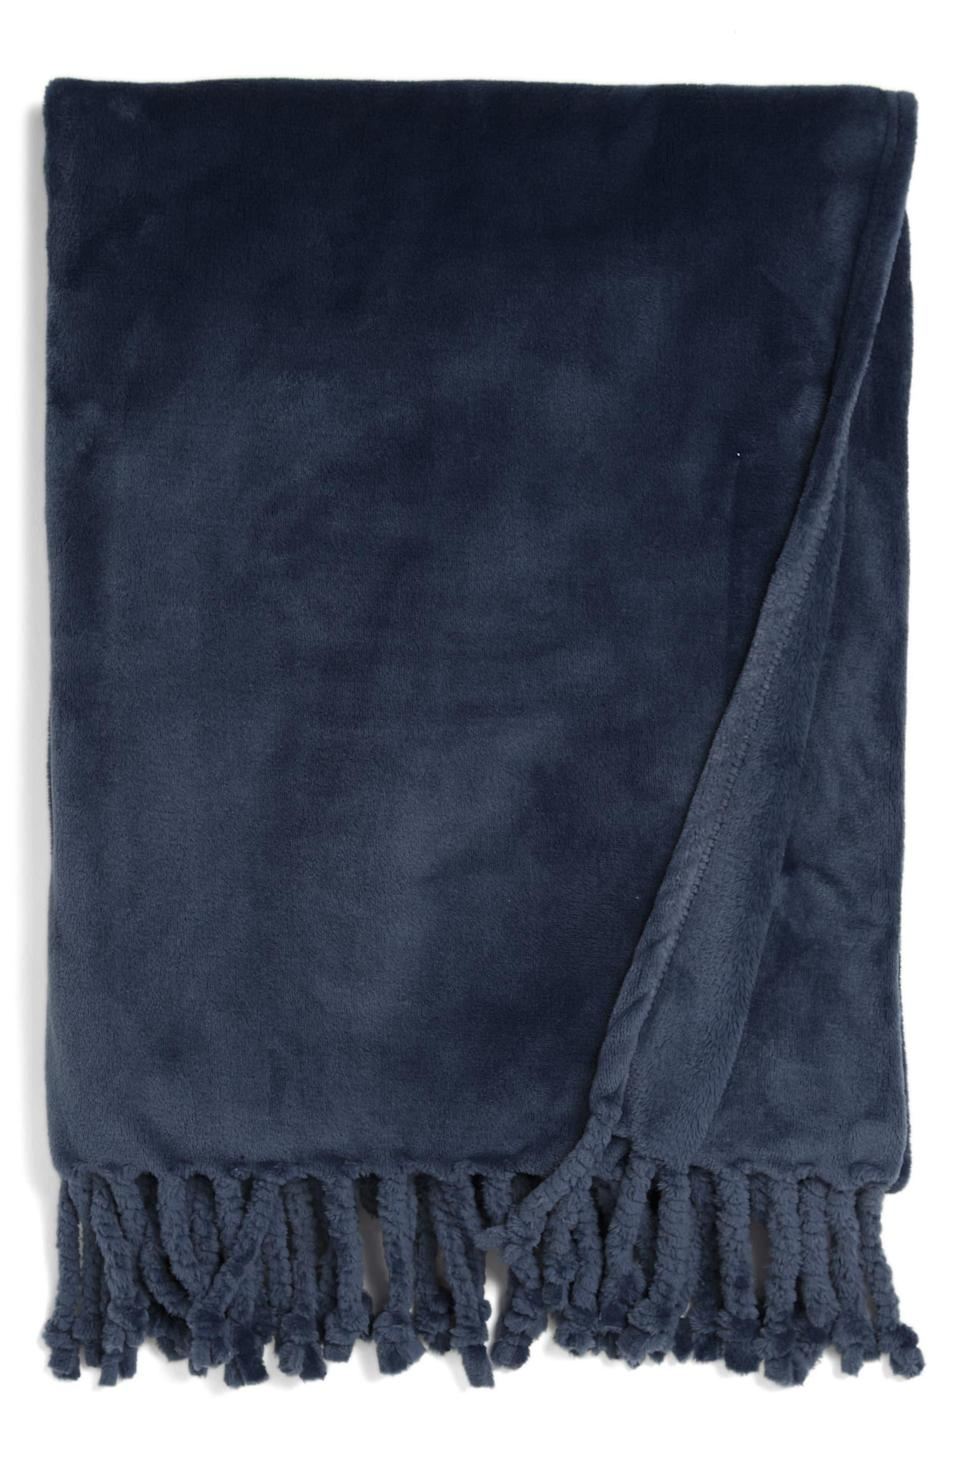 """<h2>Nordstrom Bliss Plush Throw 37% Off<br></h2><br>""""It's never too early to stock up on comfy-looking blankets! And these look so soft and nice, you know I'll be buying them! I'm a big fan of the color options and the cute tassels.""""<em> – Mercedes Viera, Associate Deals Writer</em><br><br><em>Shop</em> <strong><em><a href=""""http://nordstrom.com"""" rel=""""nofollow noopener"""" target=""""_blank"""" data-ylk=""""slk:Nordstrom"""" class=""""link rapid-noclick-resp"""">Nordstrom</a></em></strong><br><br><br><strong>Nordstrom</strong> Bliss Plush Throw, $, available at <a href=""""https://go.skimresources.com/?id=30283X879131&url=https%3A%2F%2Fwww.nordstrom.com%2Fs%2Fnordstrom-bliss-plush-throw%2F3564757"""" rel=""""nofollow noopener"""" target=""""_blank"""" data-ylk=""""slk:Nordstrom"""" class=""""link rapid-noclick-resp"""">Nordstrom</a>"""